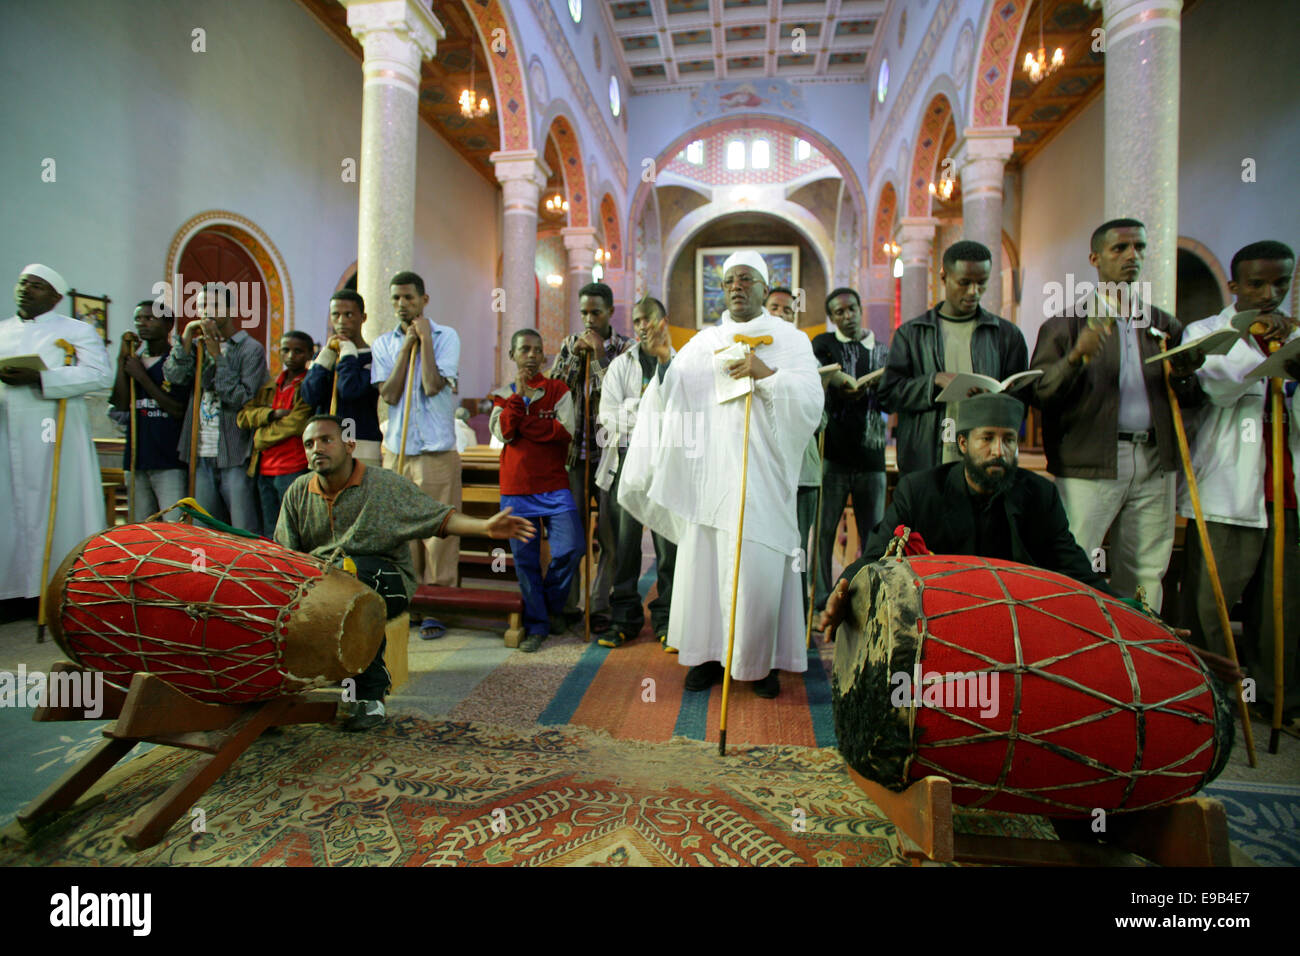 Priests with sticks sing during a vigil in the orthodox rite in the catholic Cathedral of the Holy Saviour, Adigrat, - Stock Image